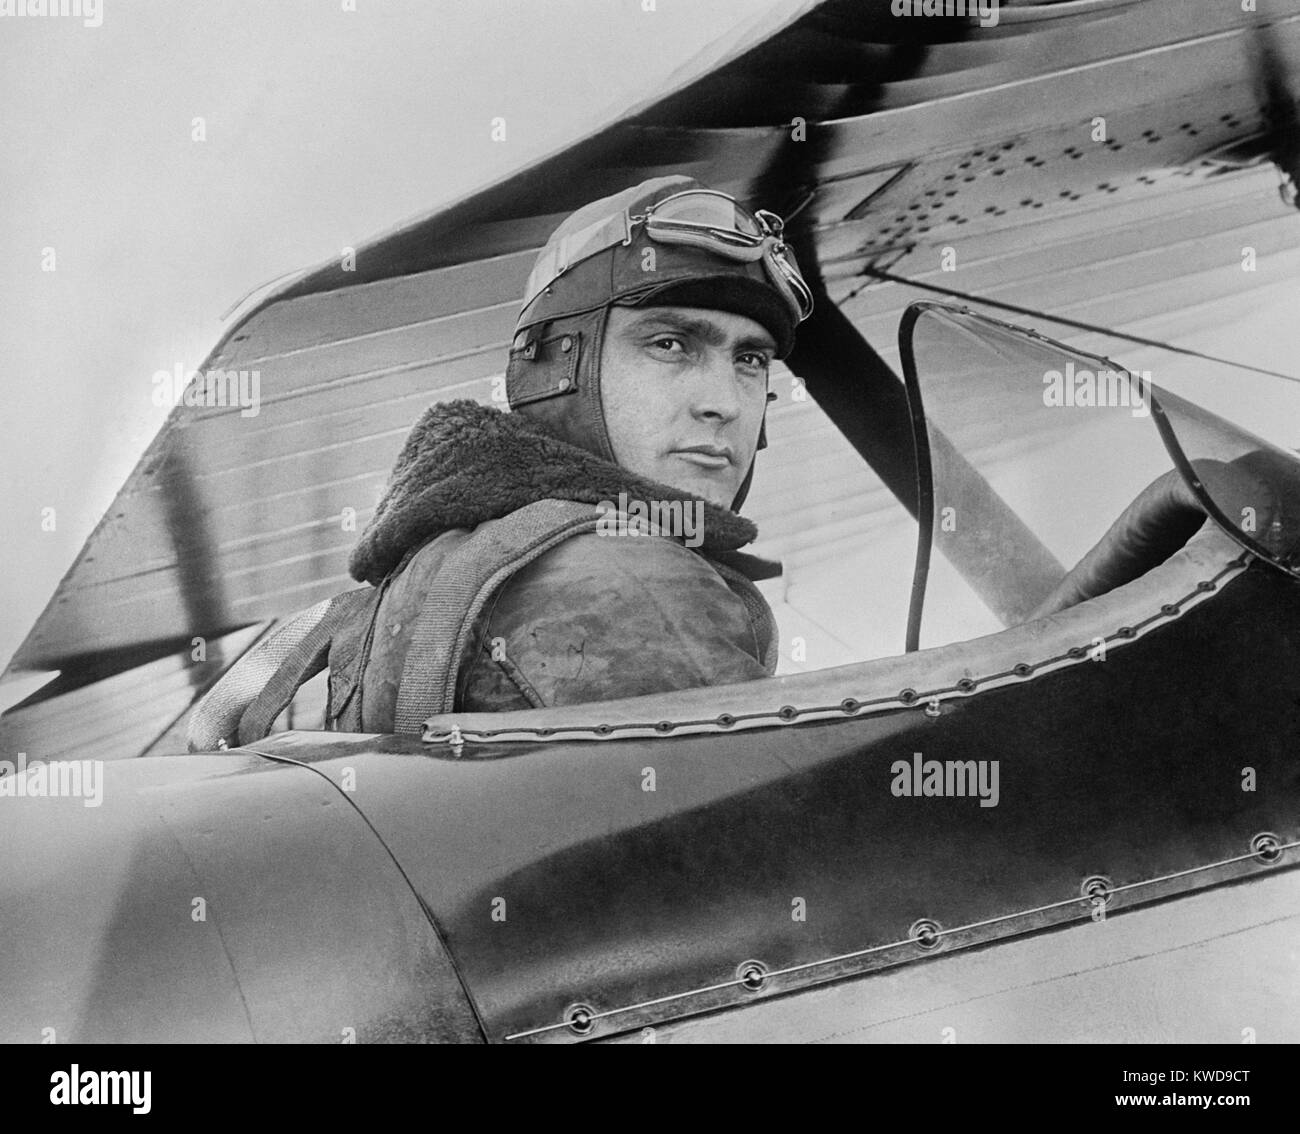 Captain Ira C. Eaker, at Bolling Field, Washington, D.C. Feb. 16, 1929. He was a military aviation pioneer between - Stock Image